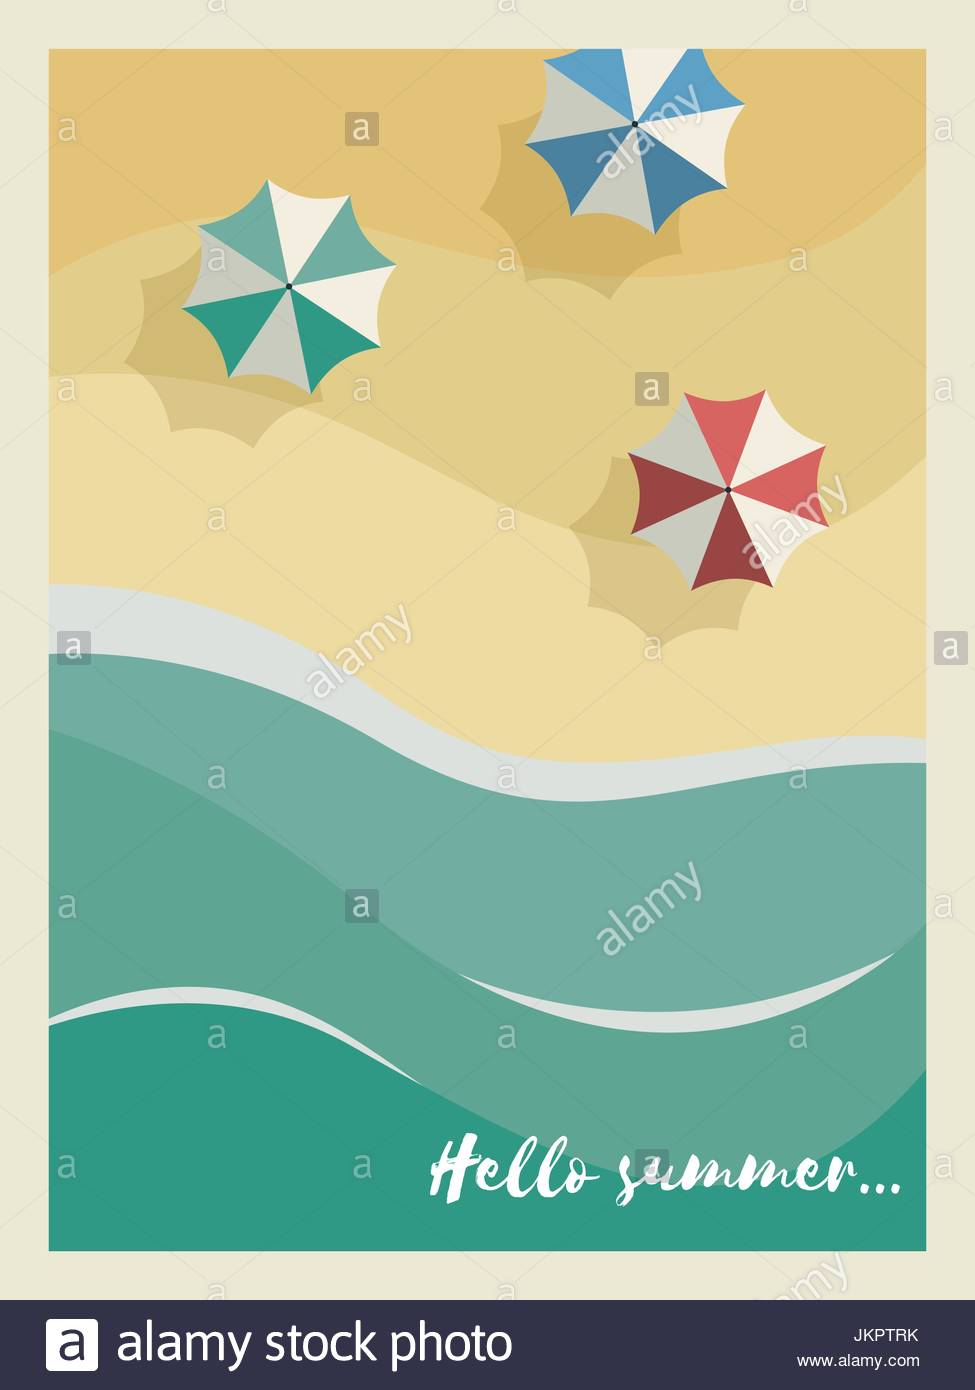 Summer Holiday Or Party Poster Or Postcard Template With Sunny Sandy Beach,  Sea With Waves And Umbrellas With Vintage Frame And Typography. Eps10 Vect